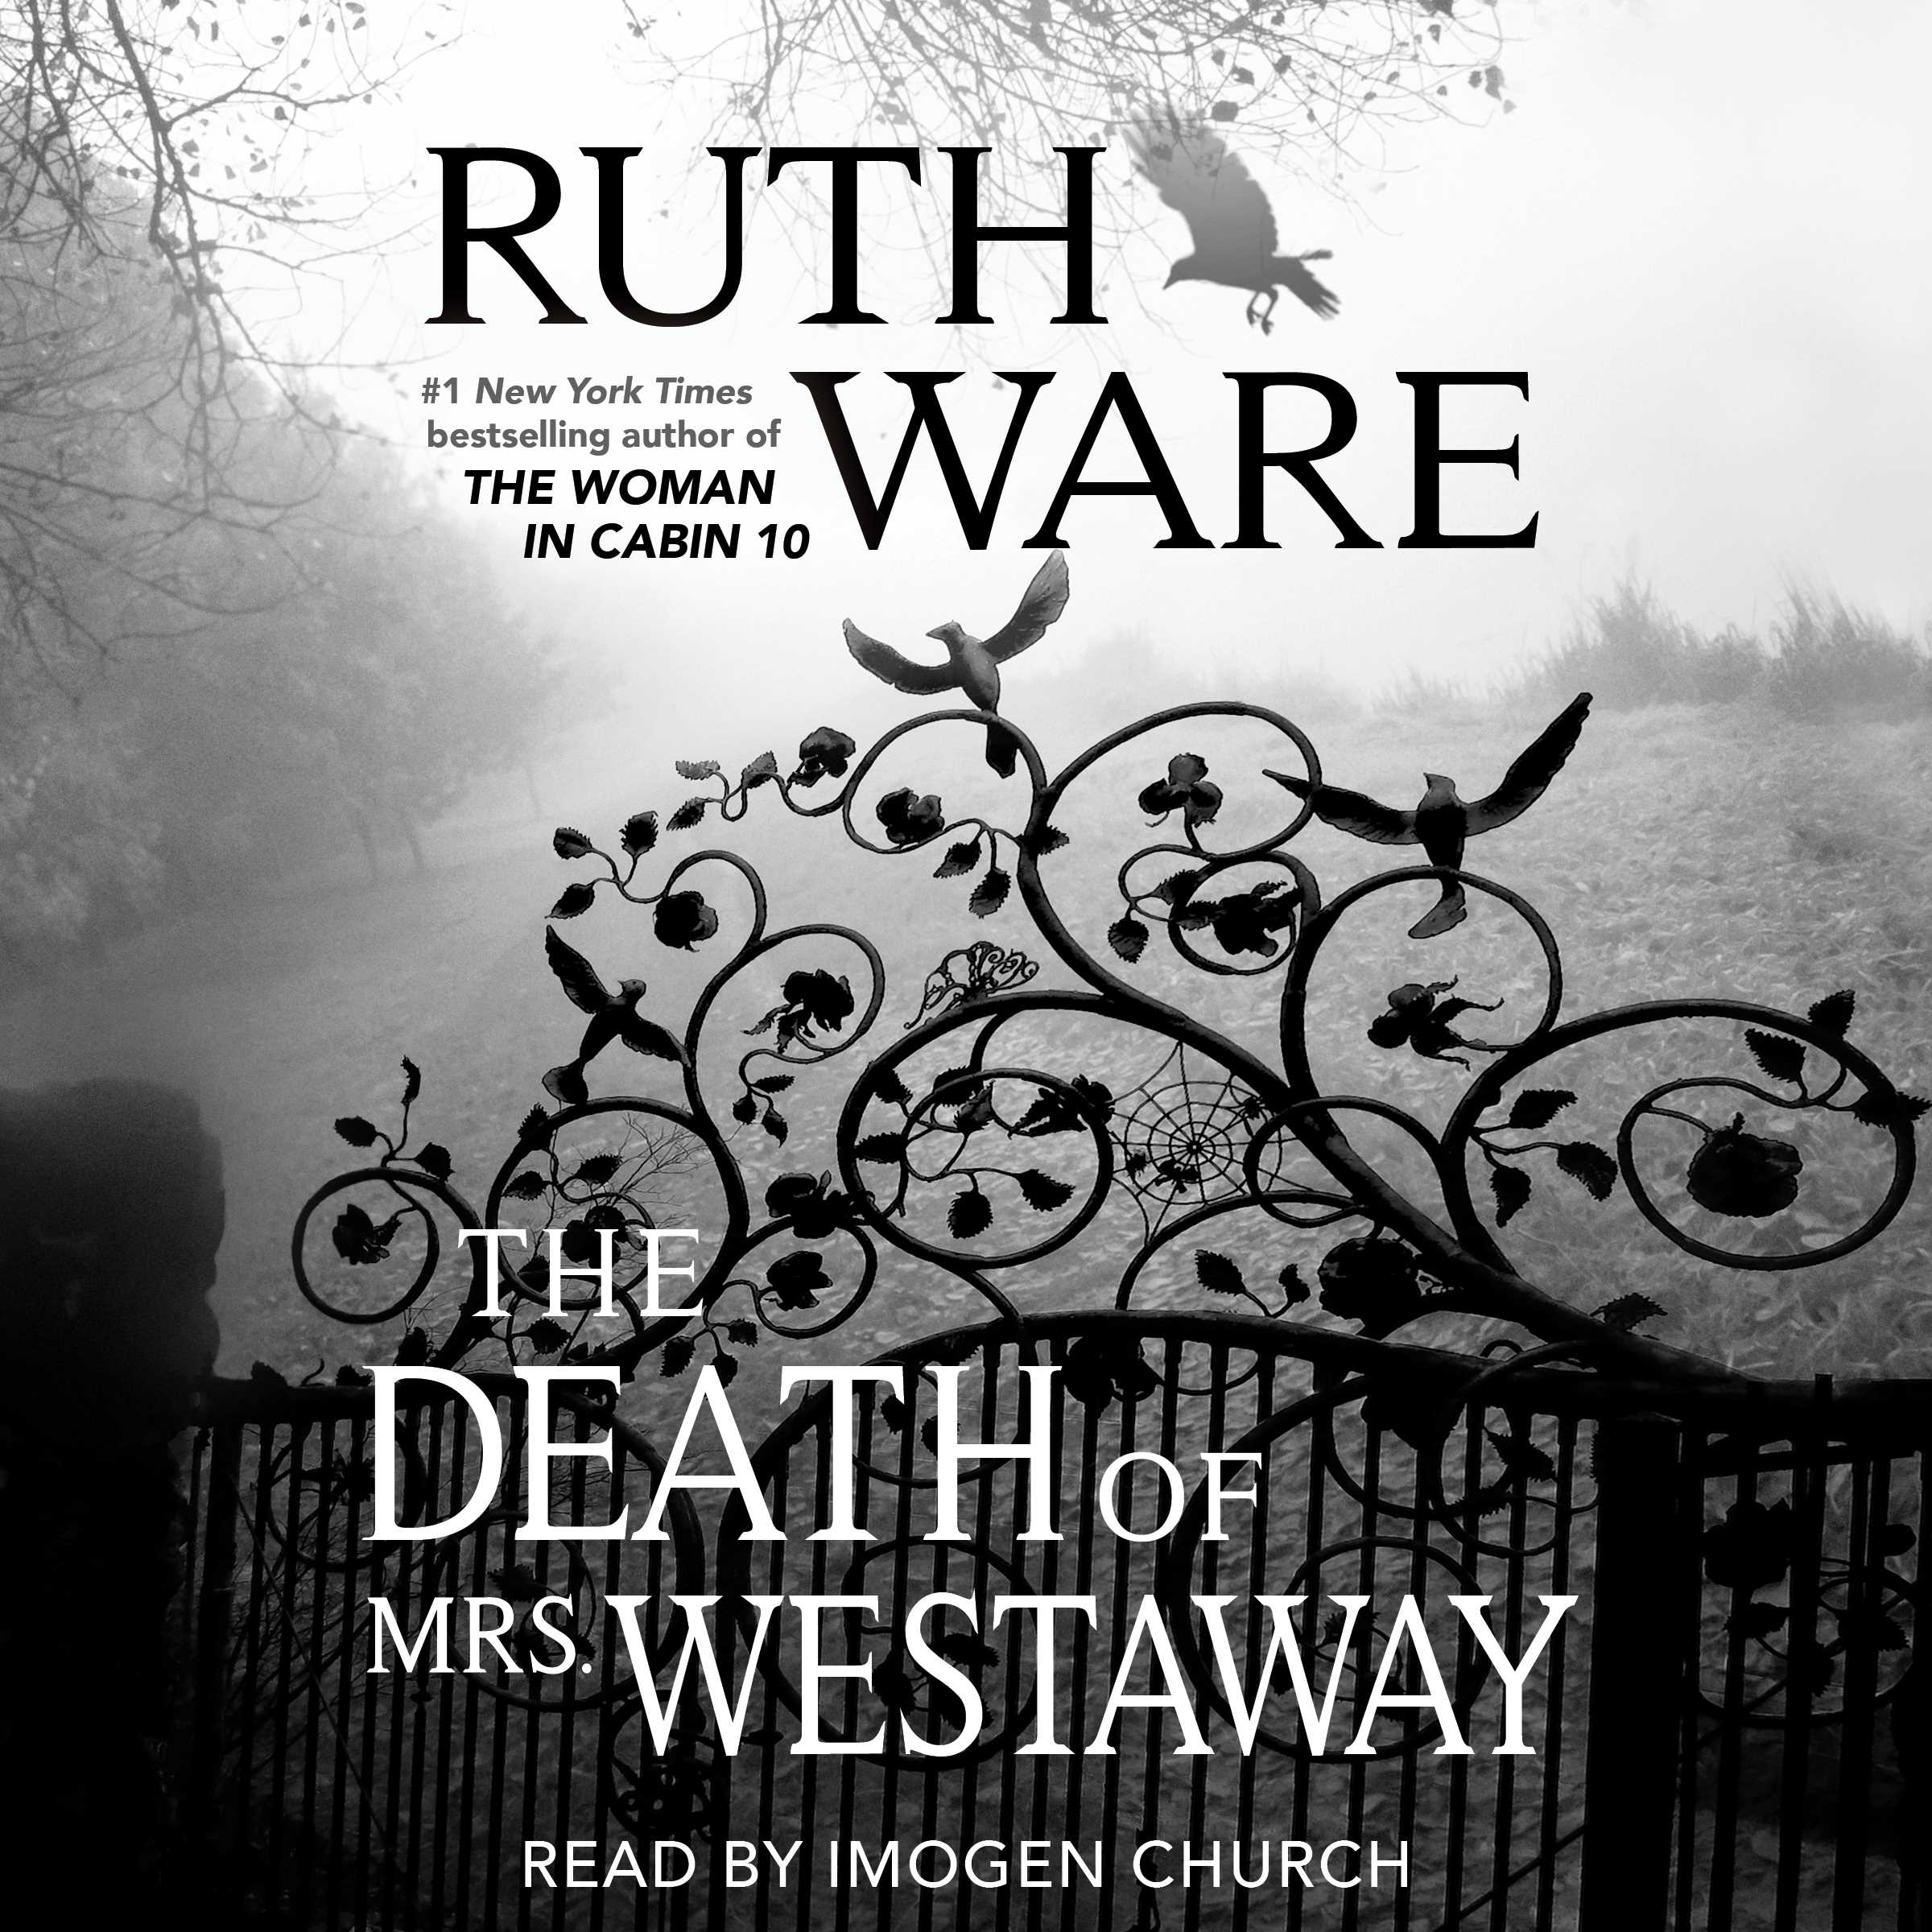 The Death of Mrs. Westaway.